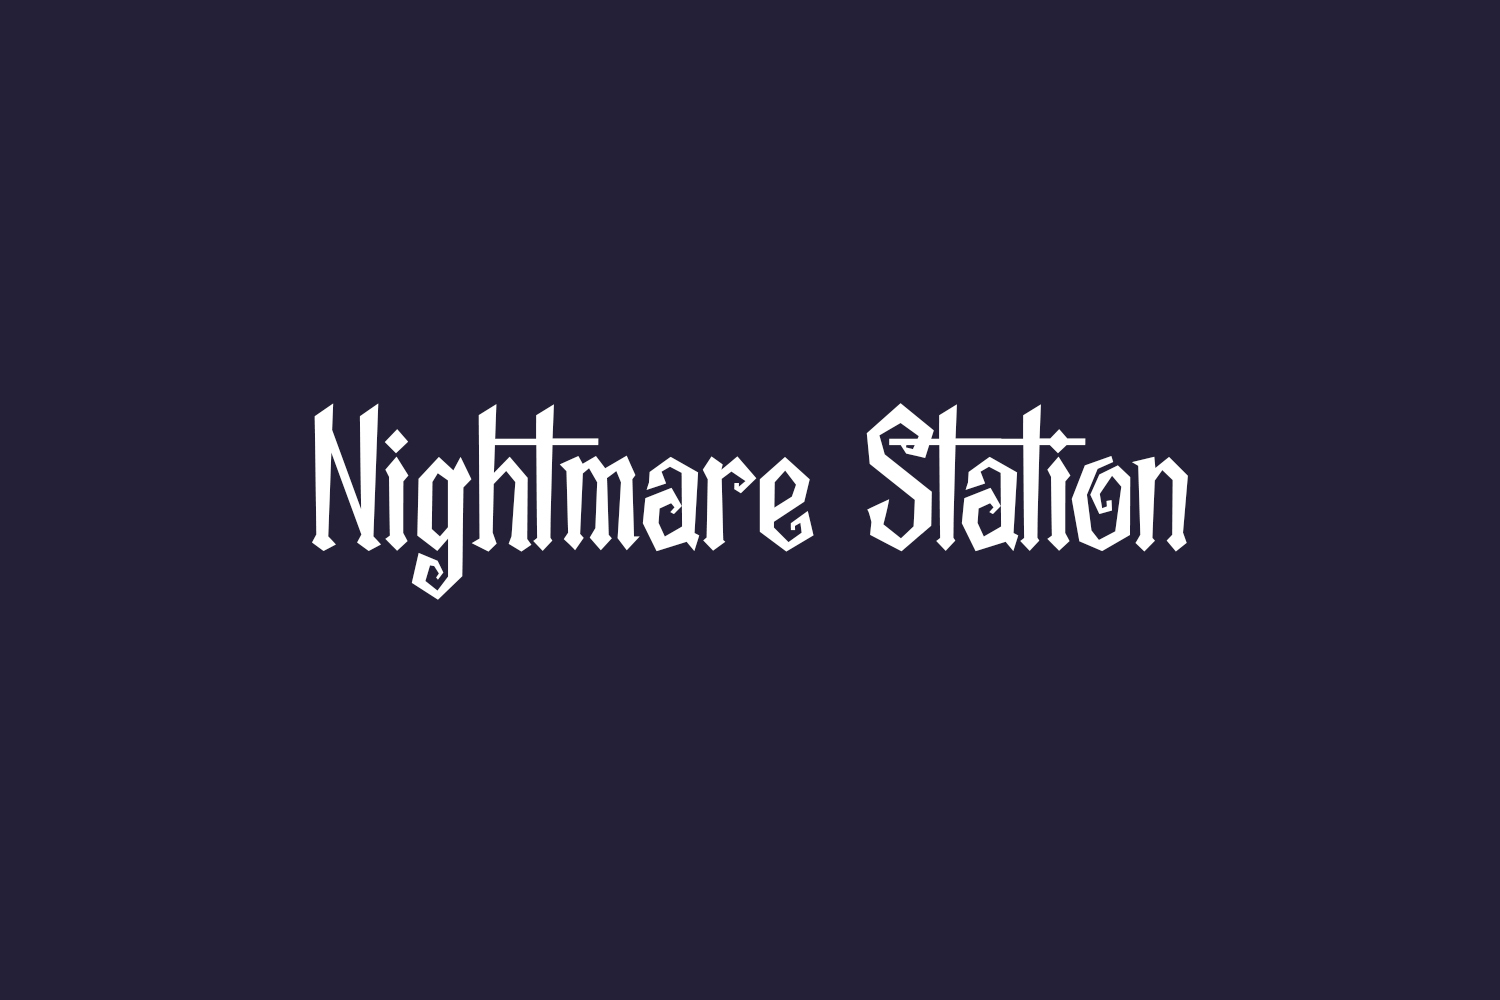 Nightmare Station Free Font